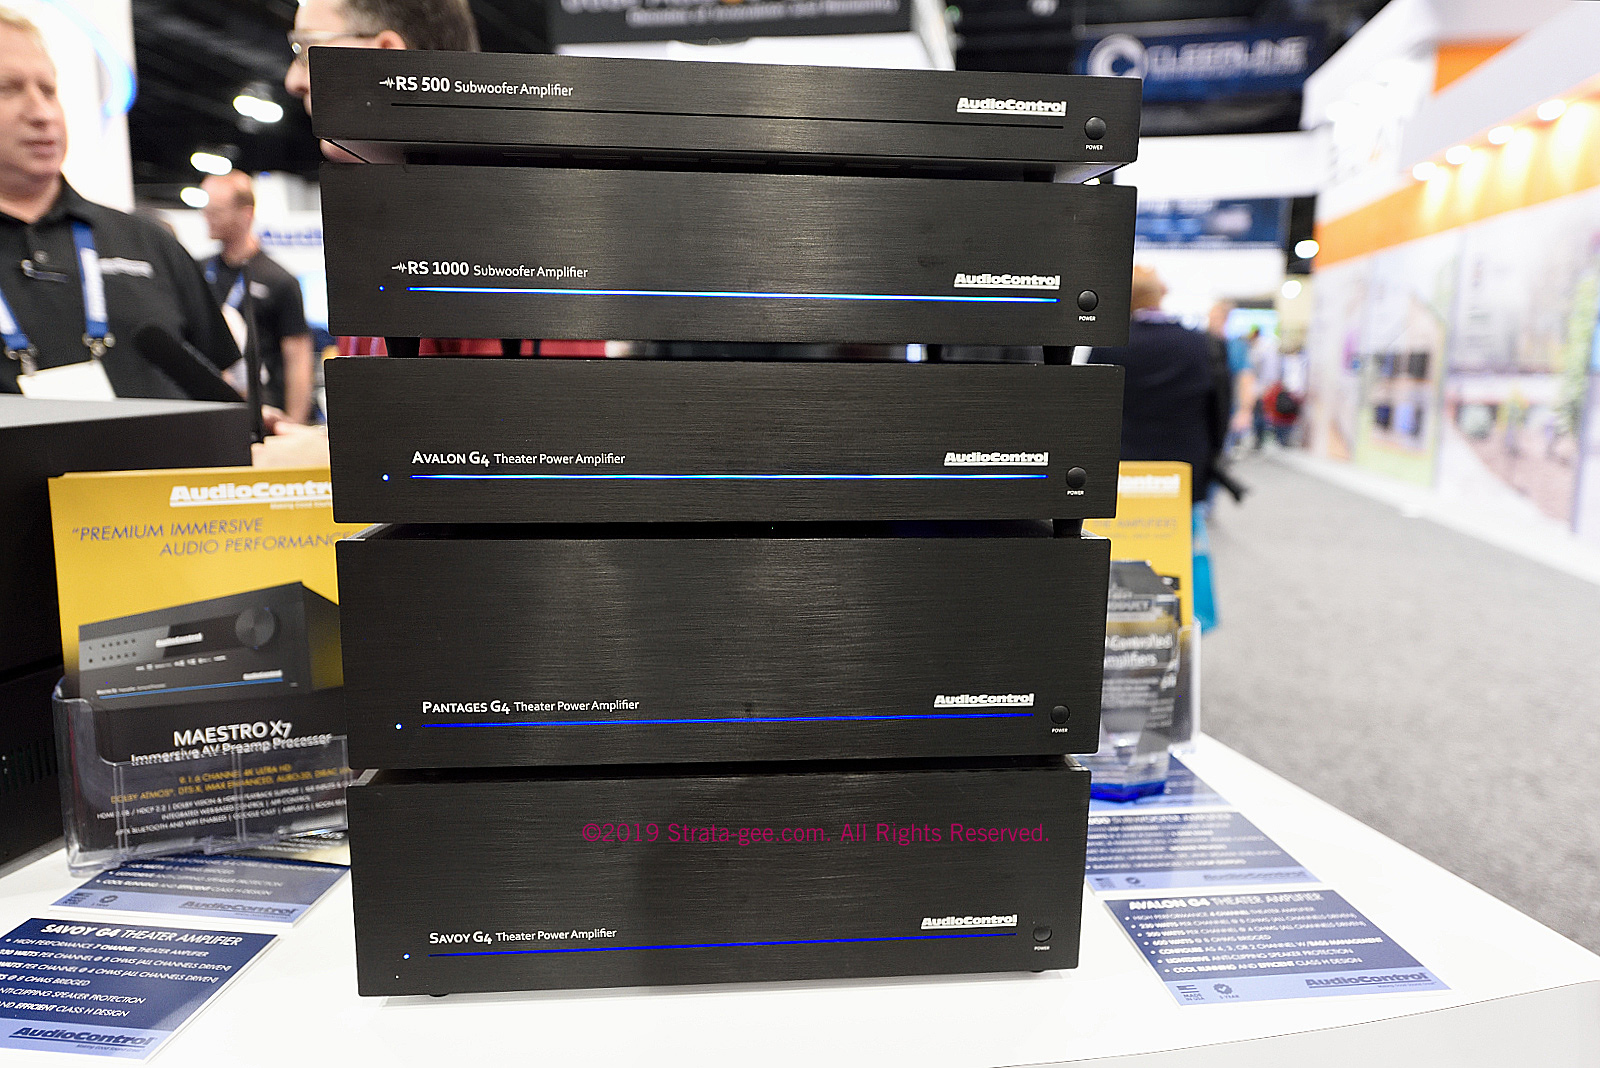 A stack of subwoofer and home theater amplifiers